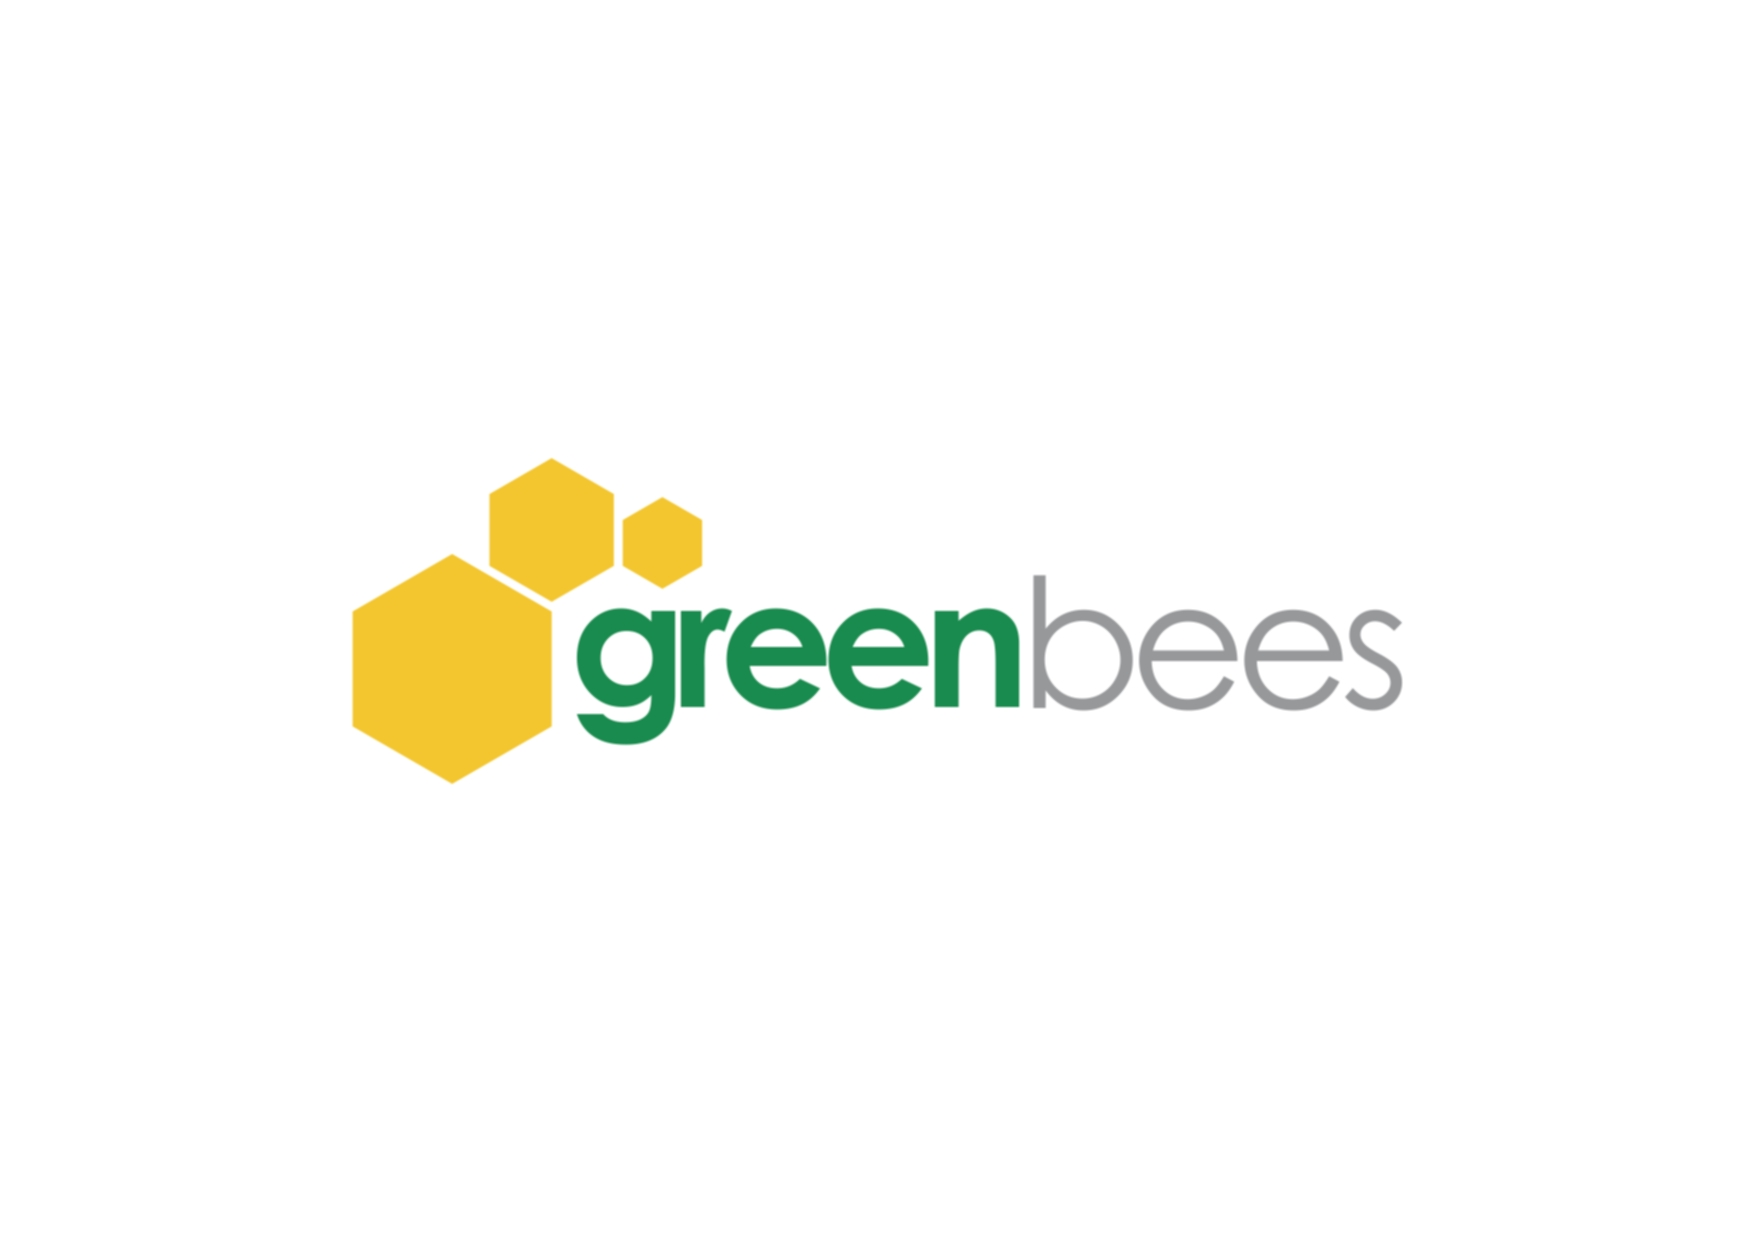 Logo Design by Private User - Entry No. 56 in the Logo Design Contest Greenbees Logo Design.